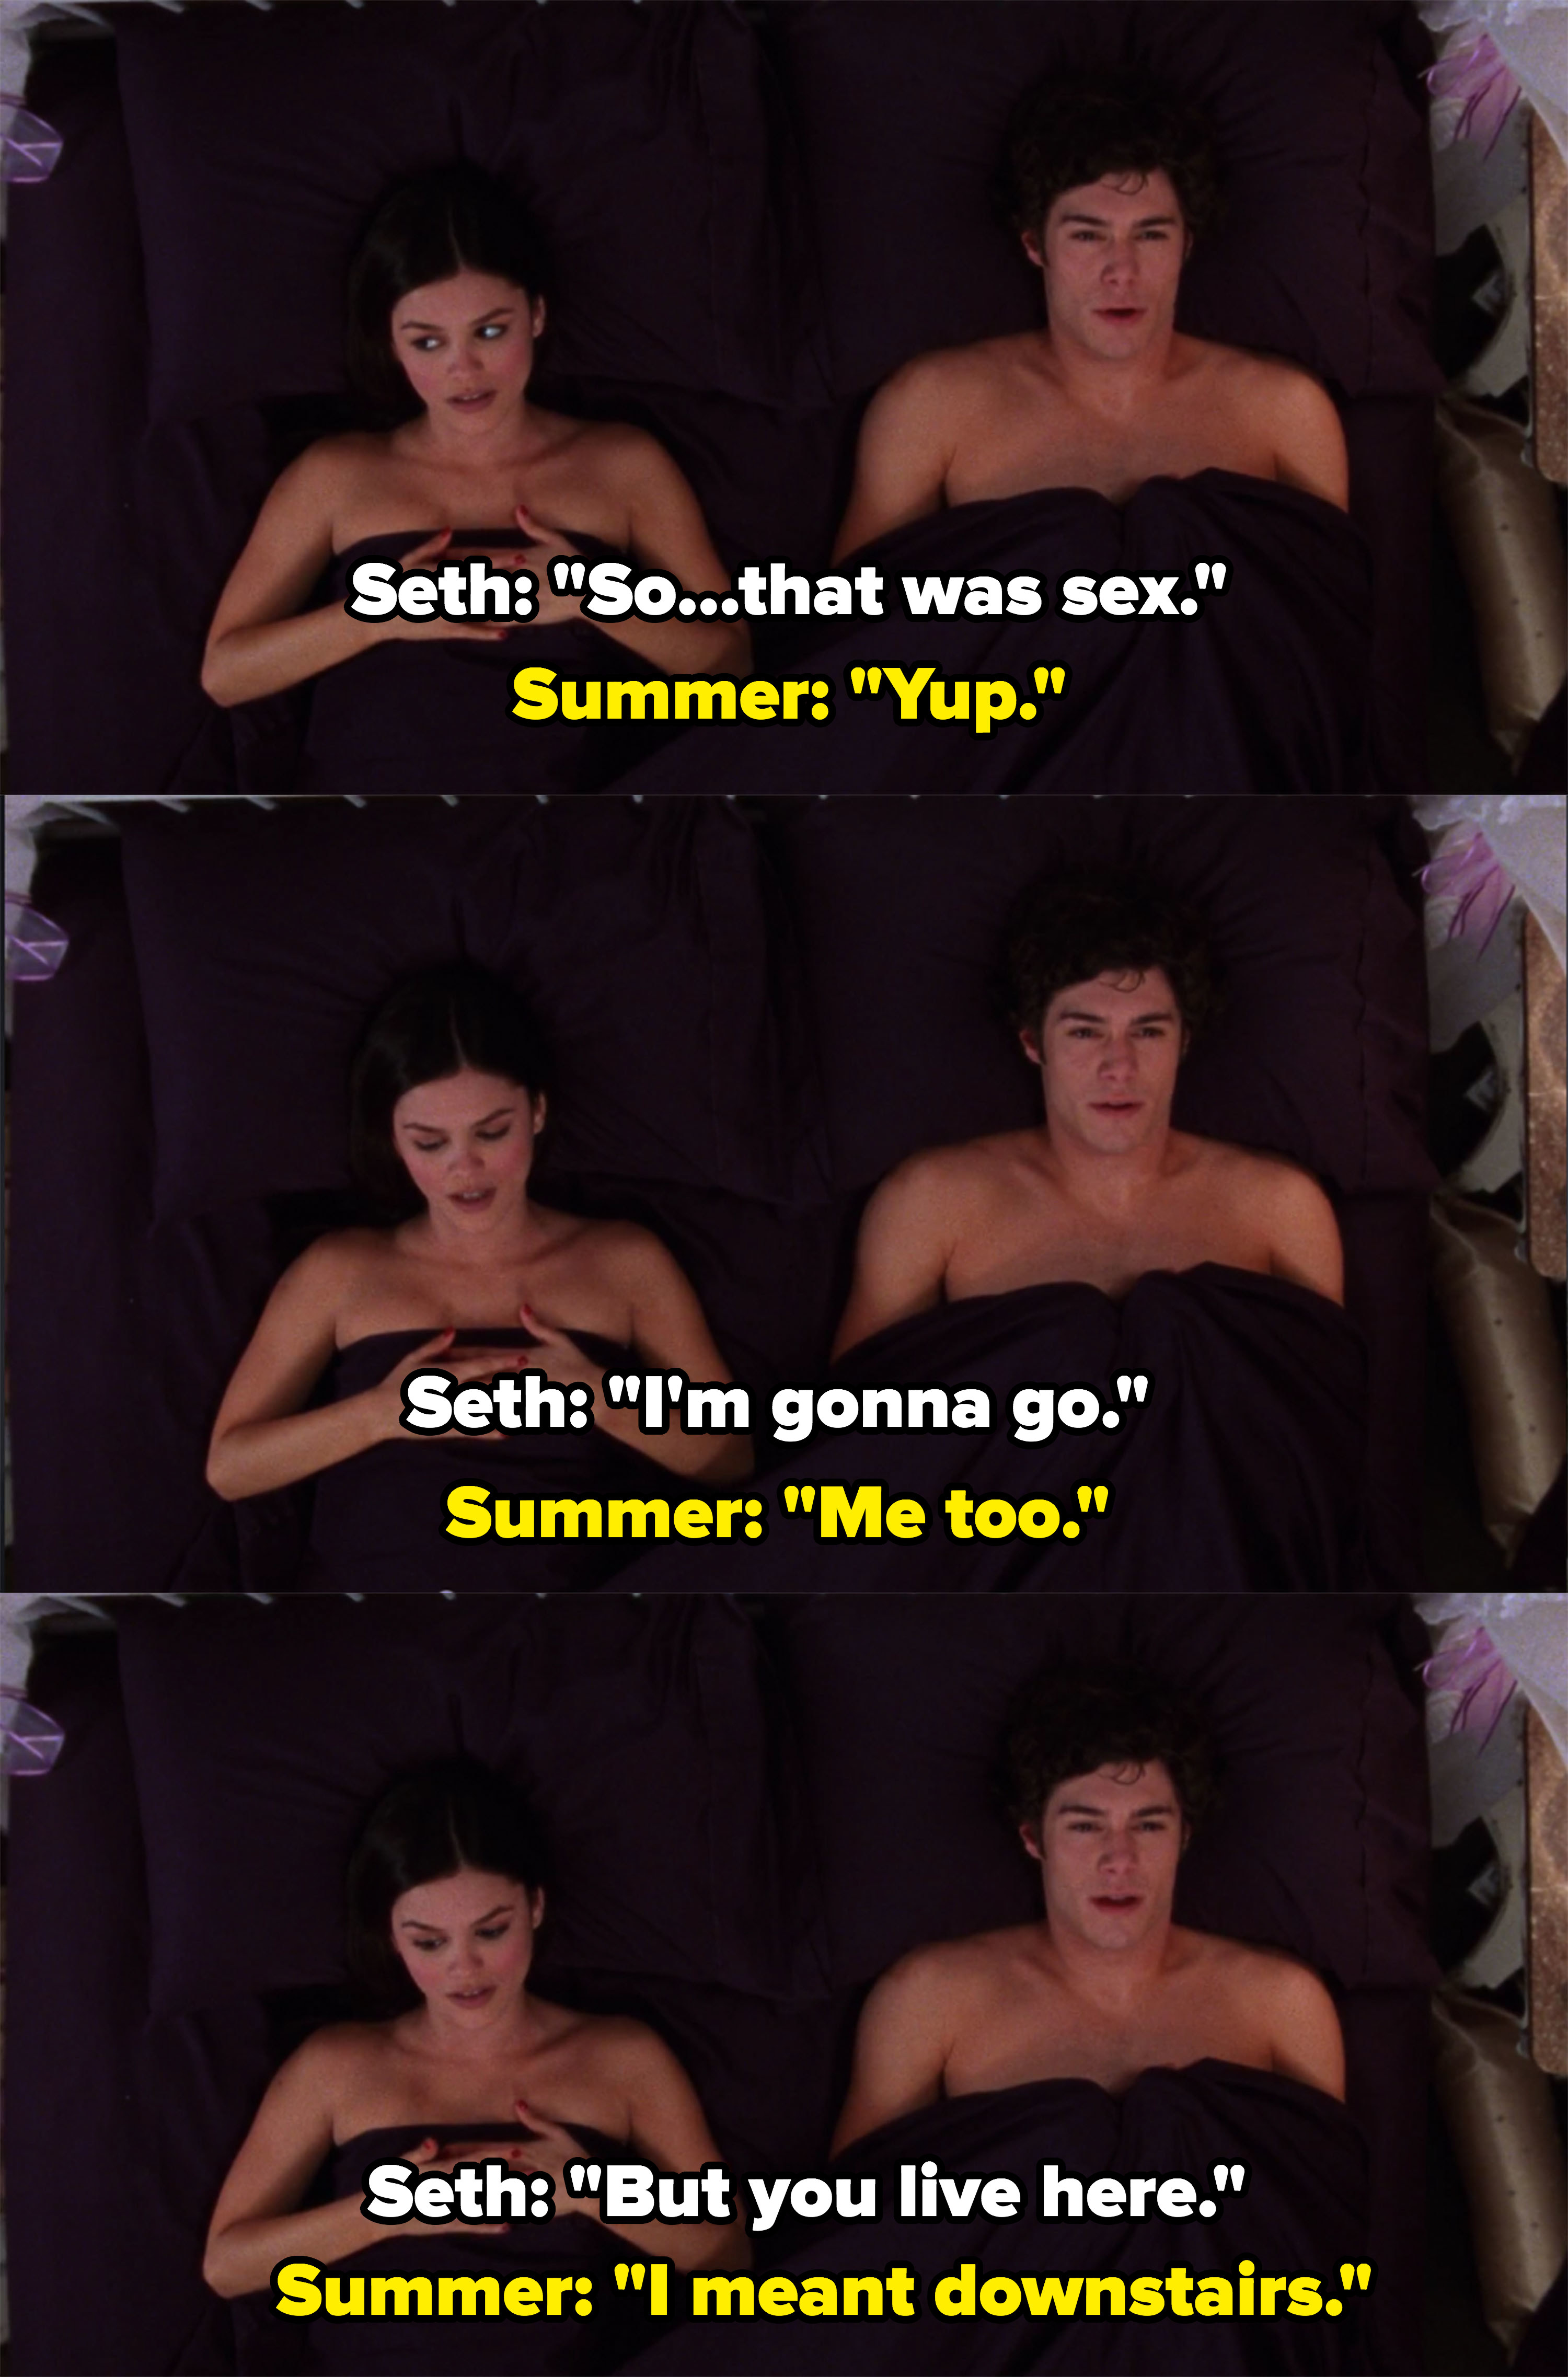 Seth says he's going to go and Summer says she is too, Seth awkwardly reminds her she lives there